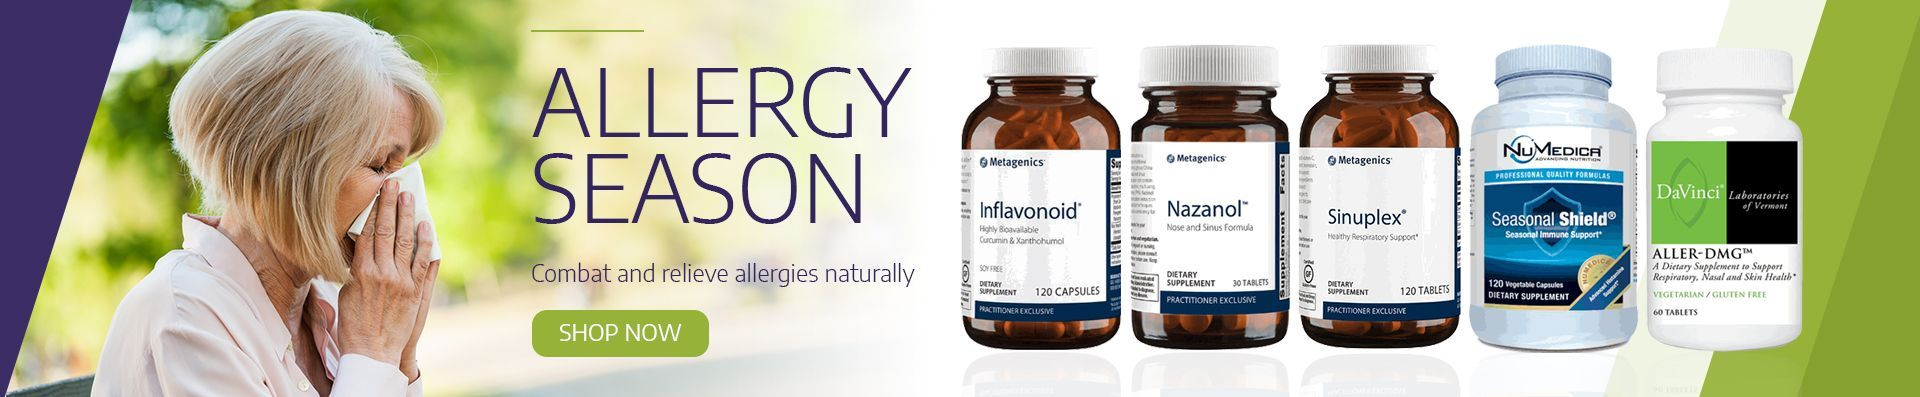 Get The Restful Sleep Your Body Needs - Rejuvenate Your Body With the Support of Kavinace, Travacor, & Nuvoxil